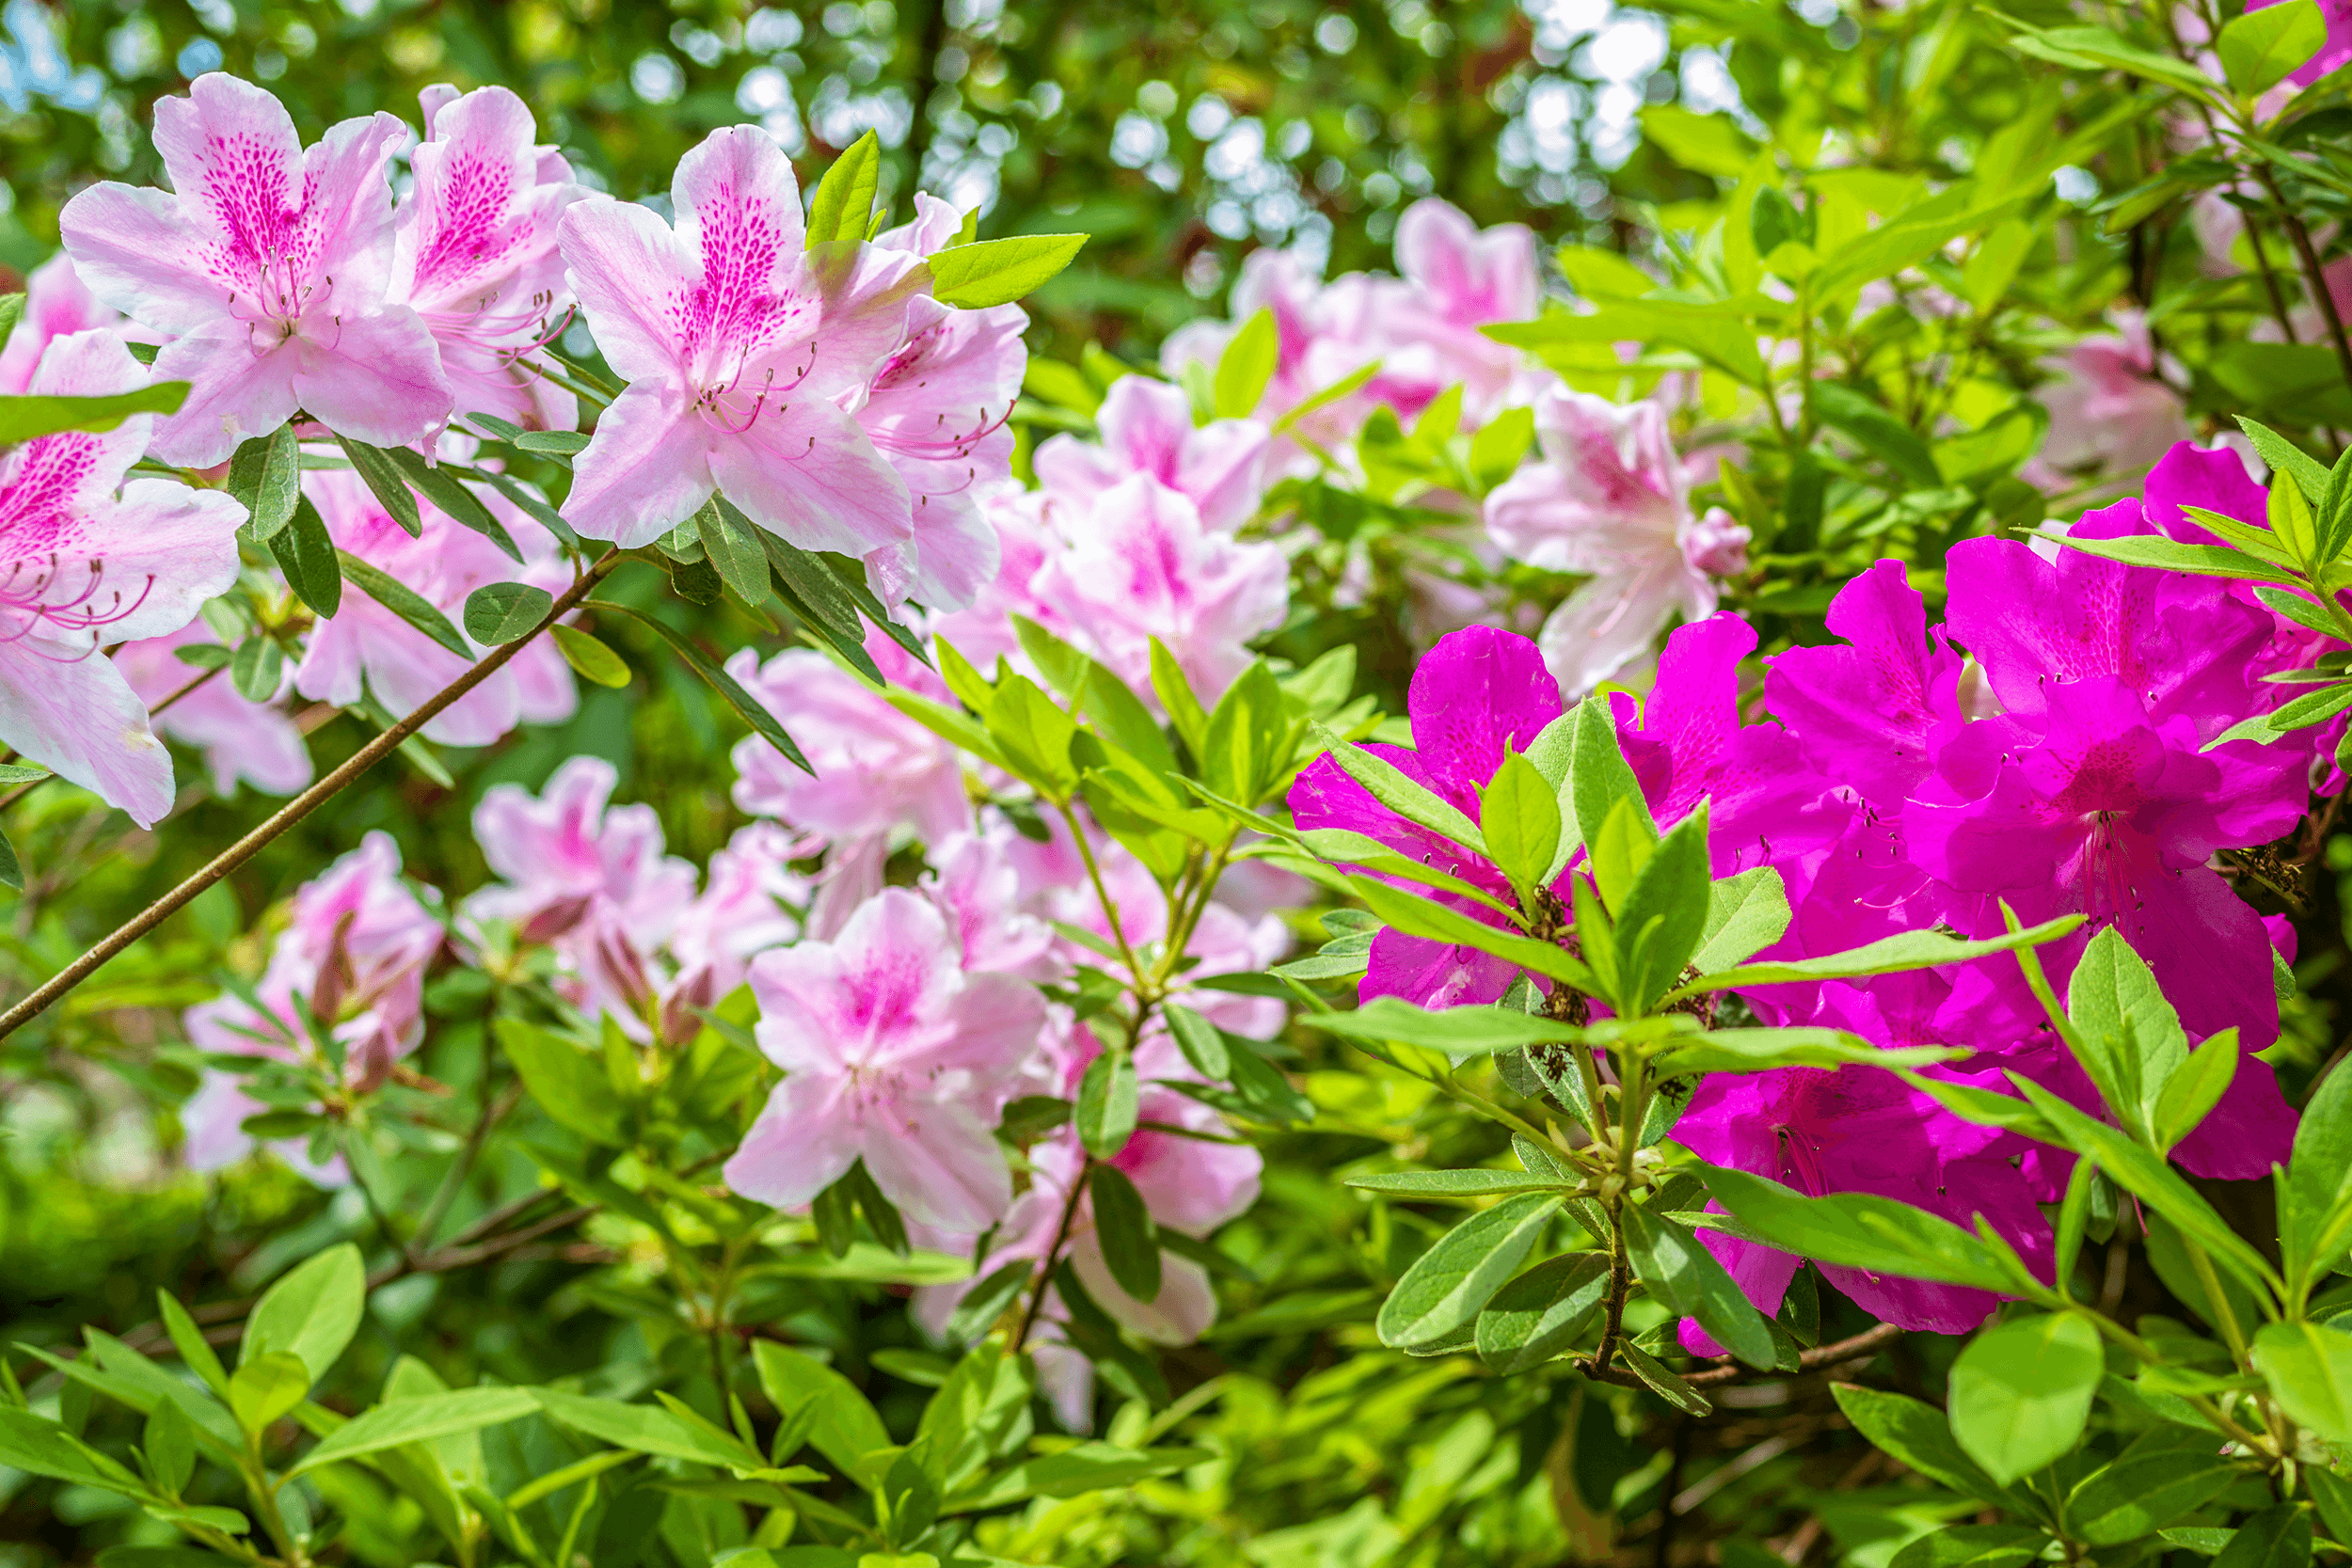 The  George Tabor Azalea  is a hybrid plant producing lovely flowers. It not just very beautiful but also very sun and heat tolerant.